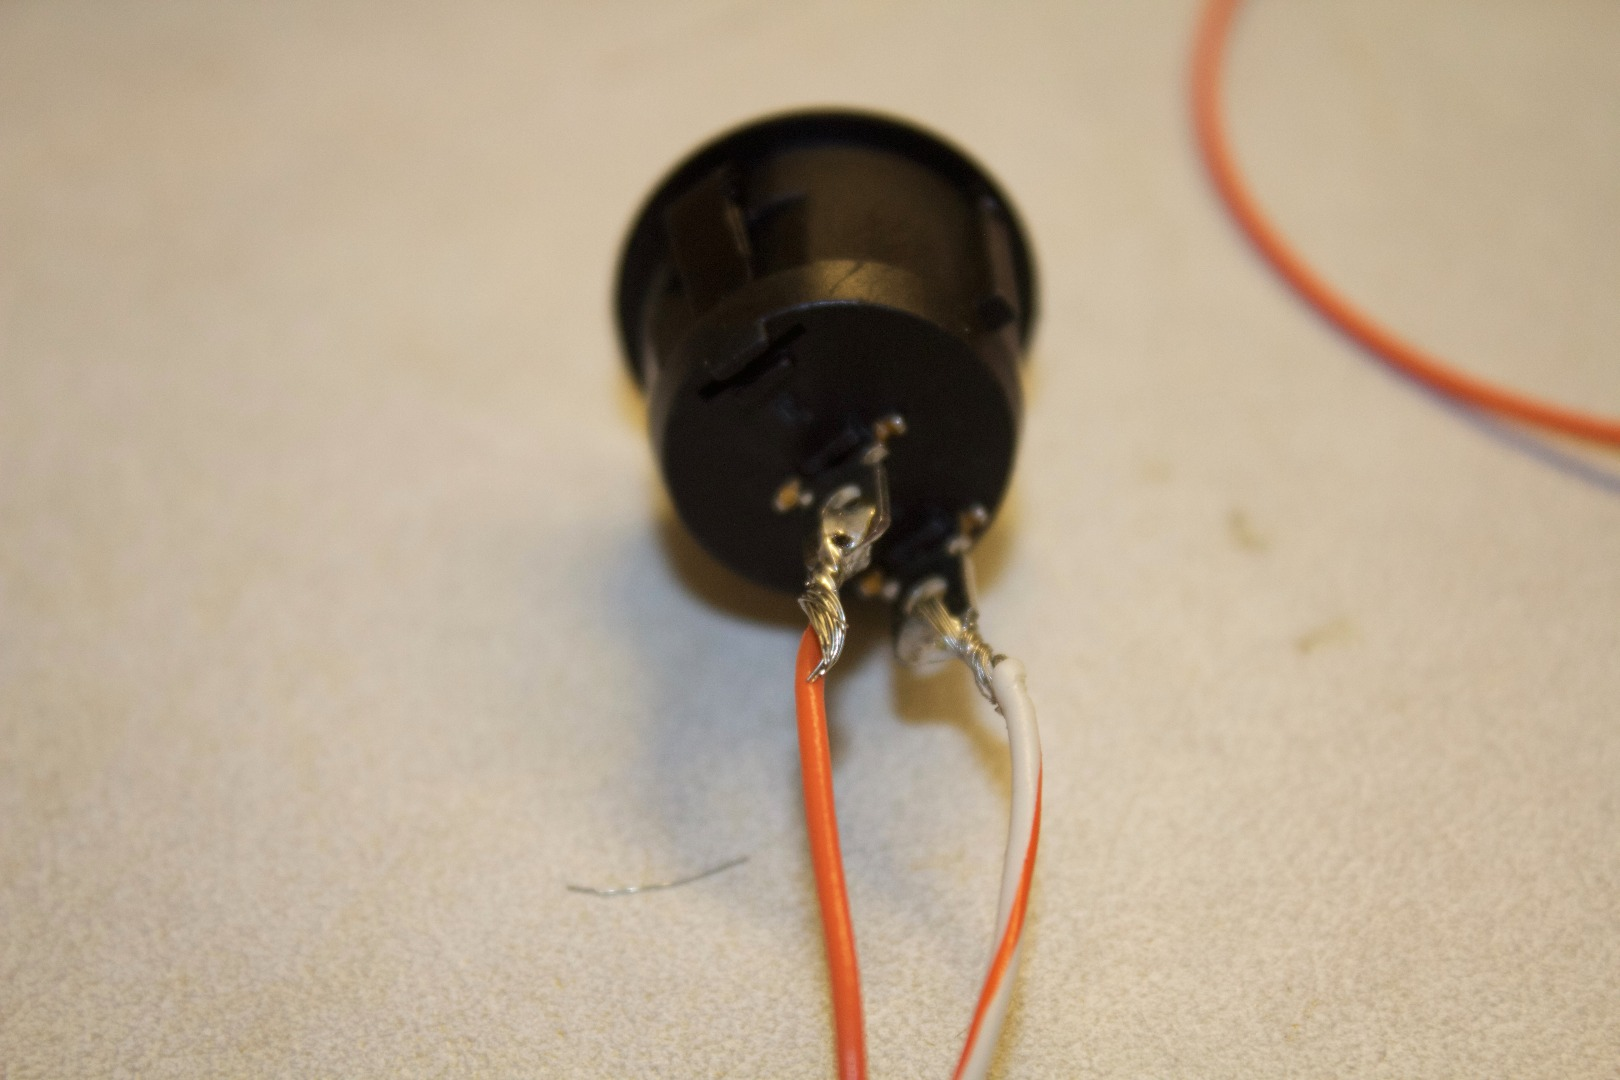 Picture of Attaching On/Off Switch